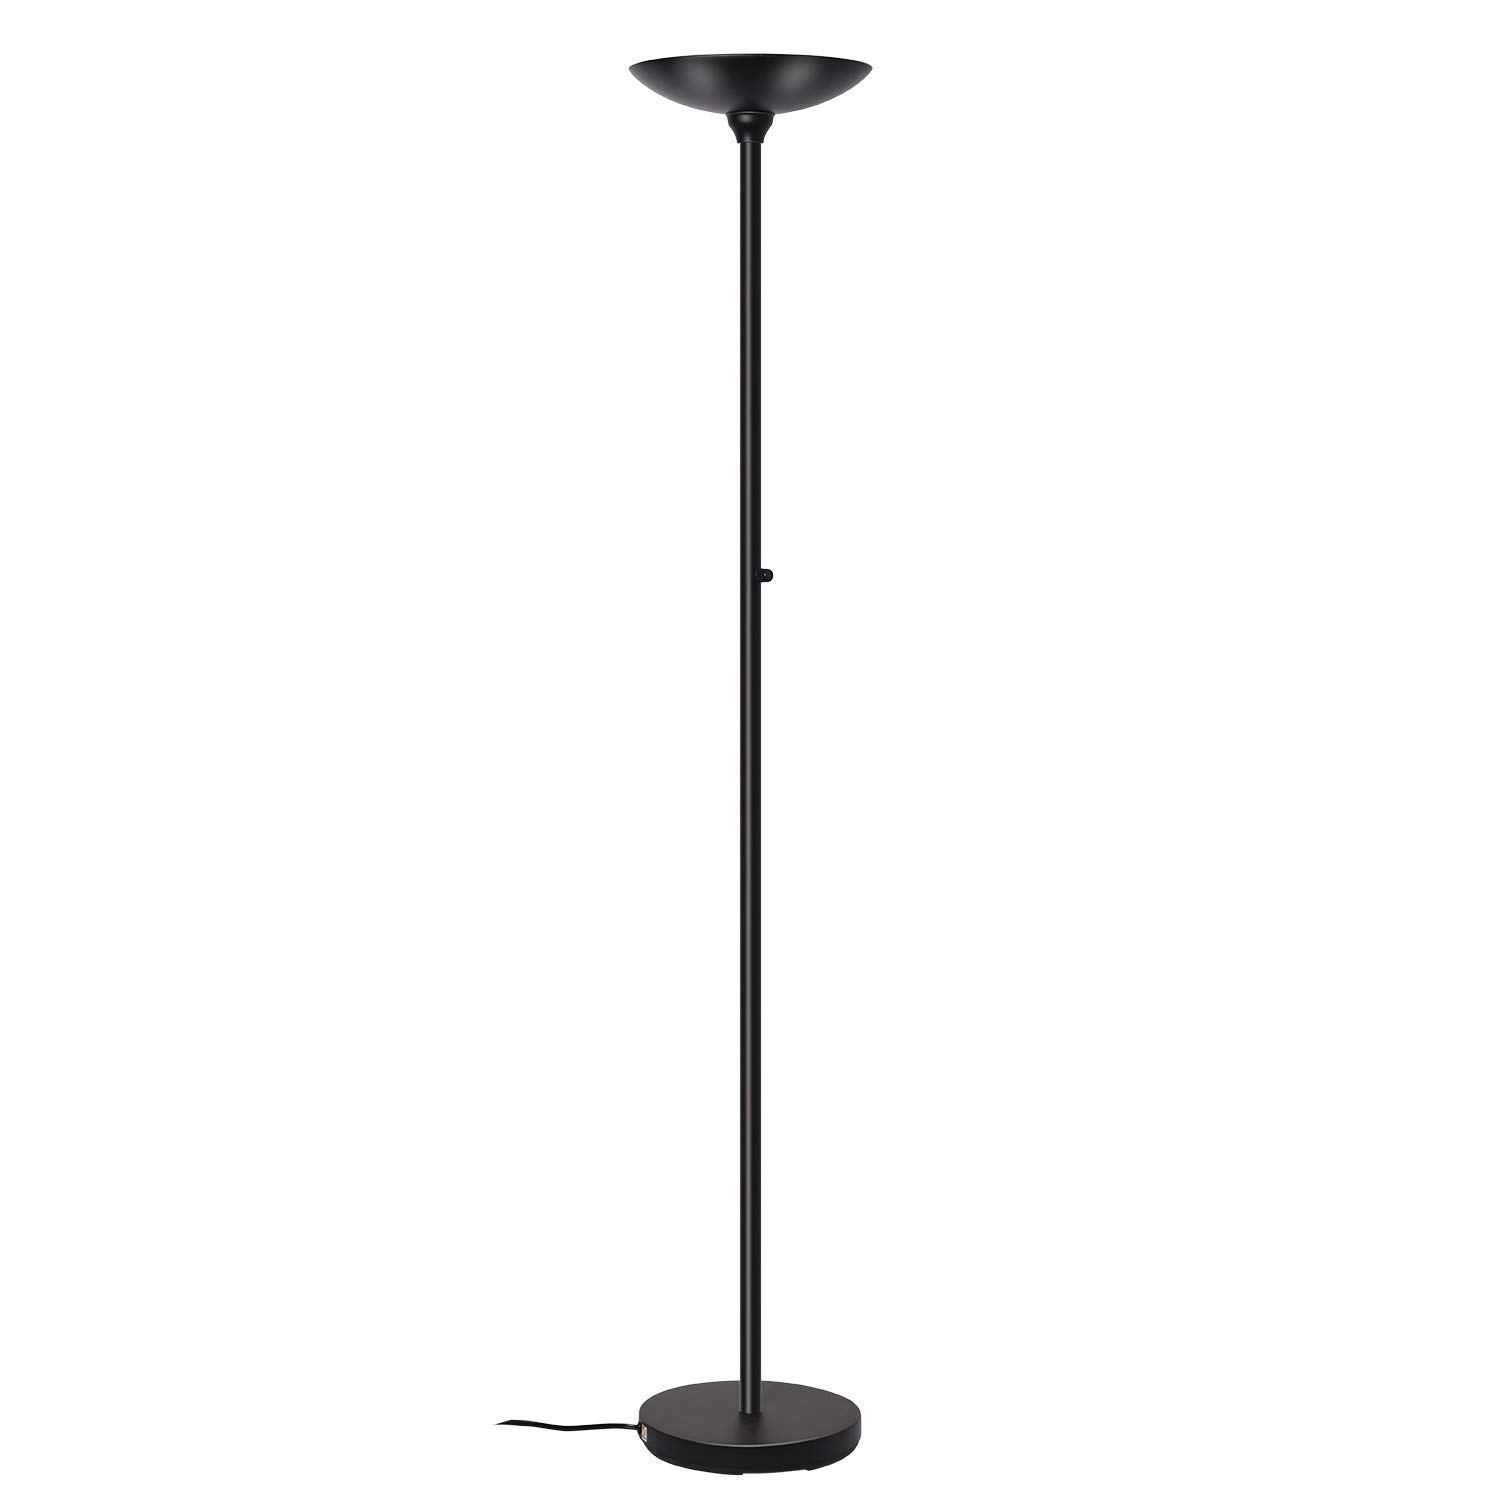 Floor Lamps, SUNLLIPE LED Torchiere Floor Lamp 24W, Dimmable Modern Tall Standing Pole Uplight Torch Floor Light for Living Room, Bedrooms, Office,Jet Black